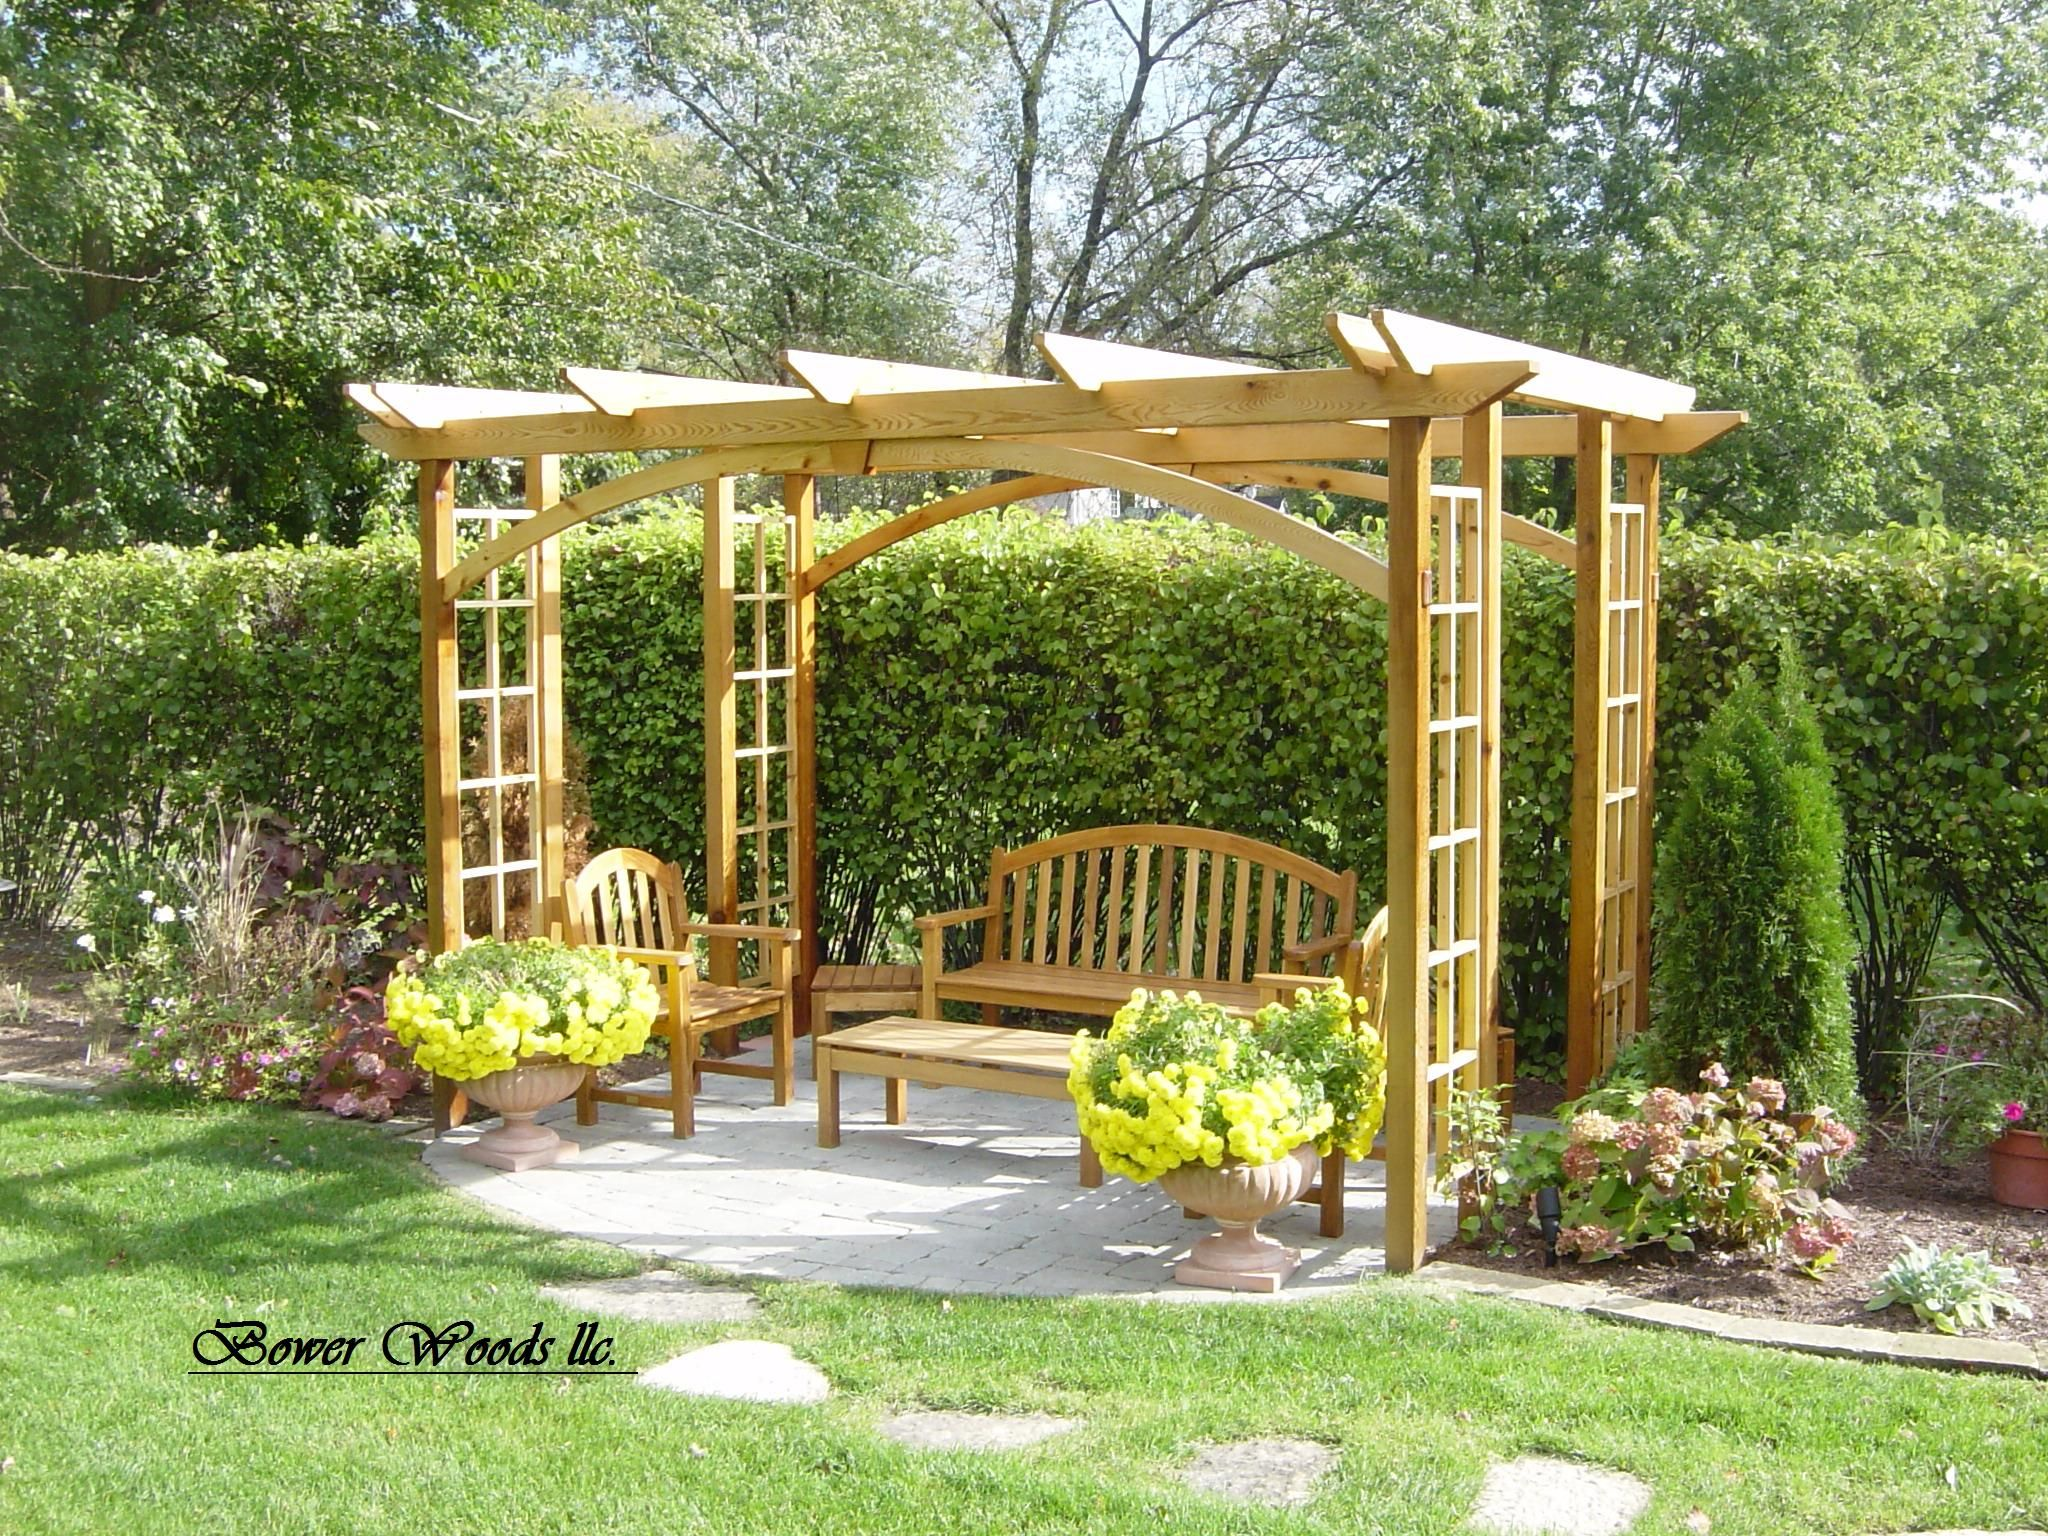 Construire une pergola pergolas garden structures and for Small backyard plans